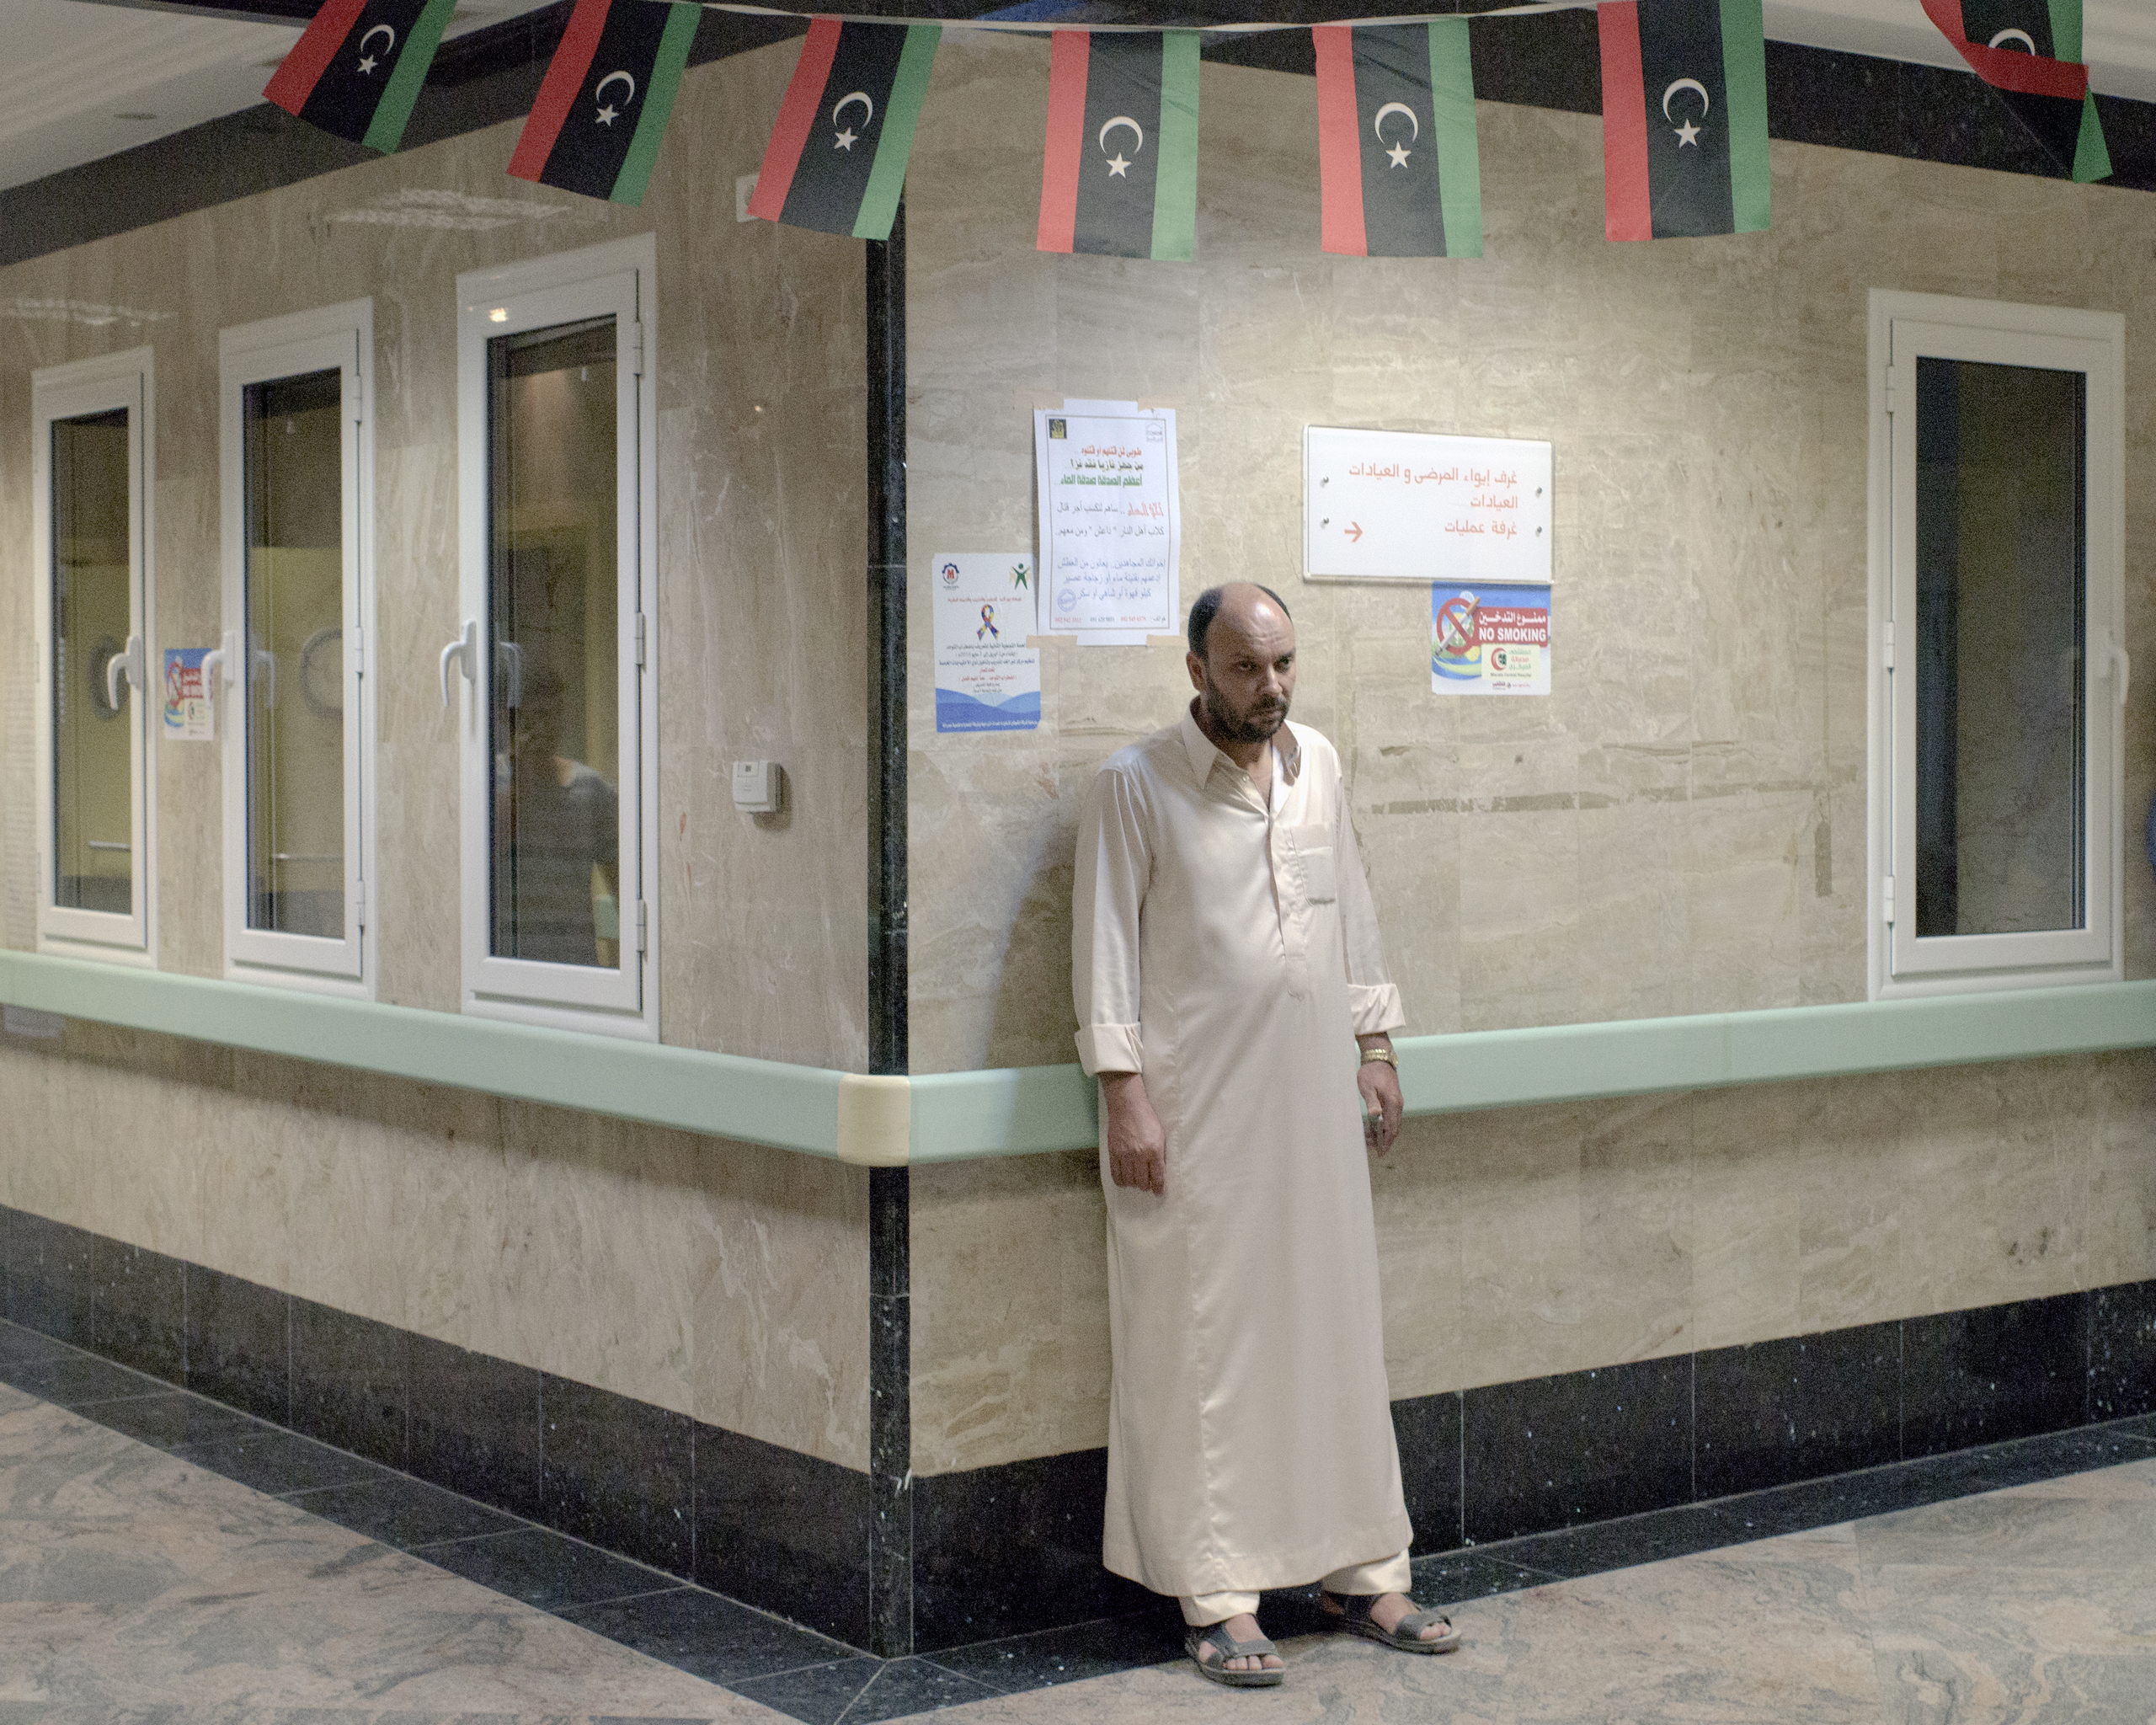 A relative of a wounded fighter waits outside the emergency room of Misratah Central Hospital Misratah, Libya, July 2016.